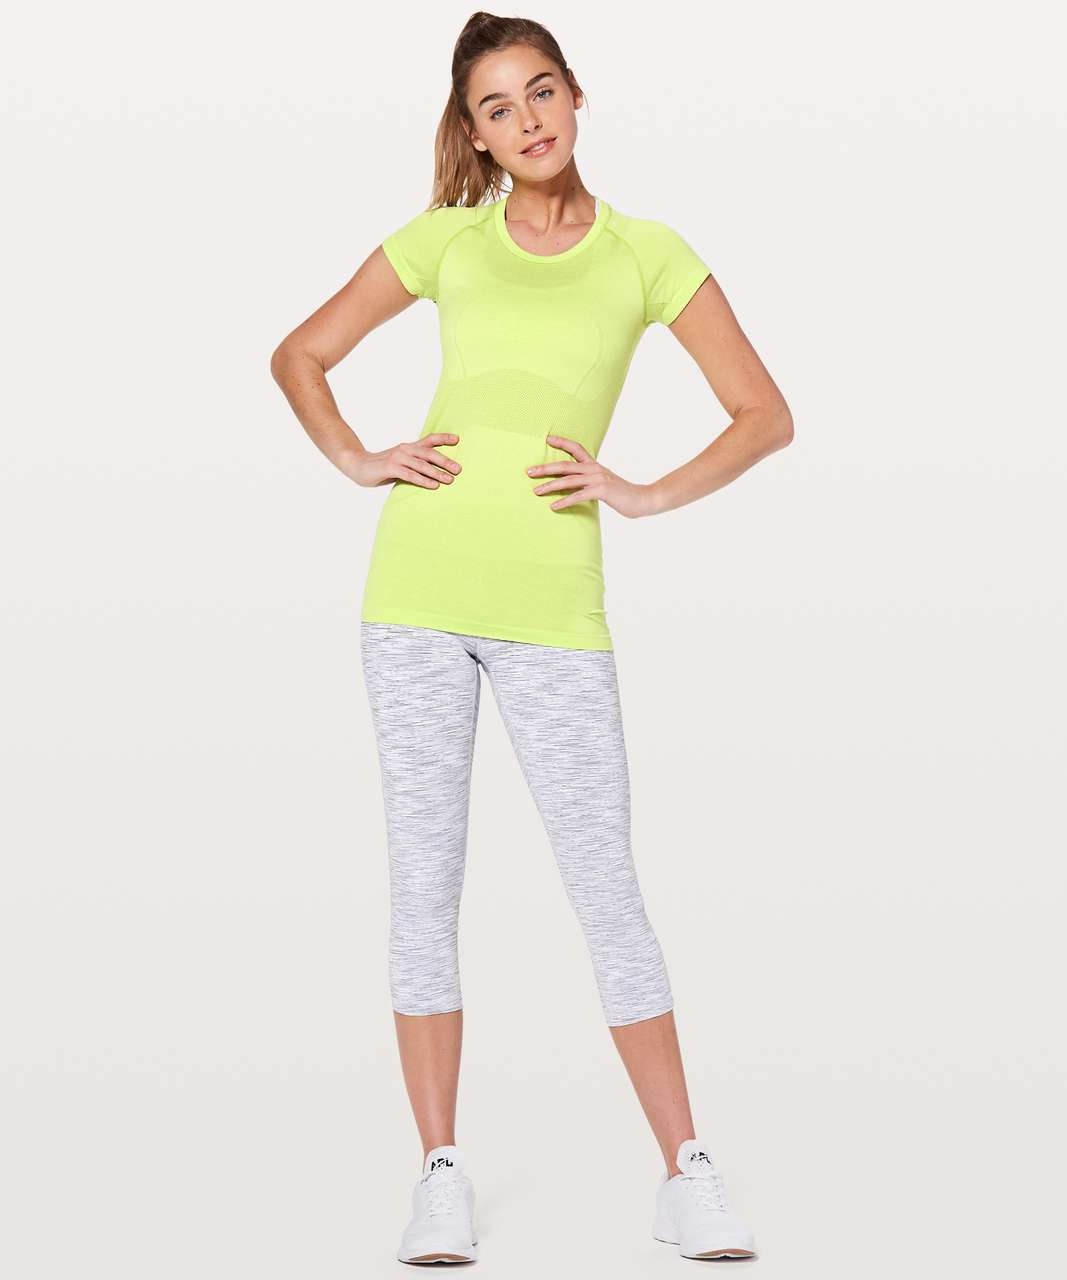 Lululemon Swiftly Tech Short Sleeve Crew - Lucid Lime / White